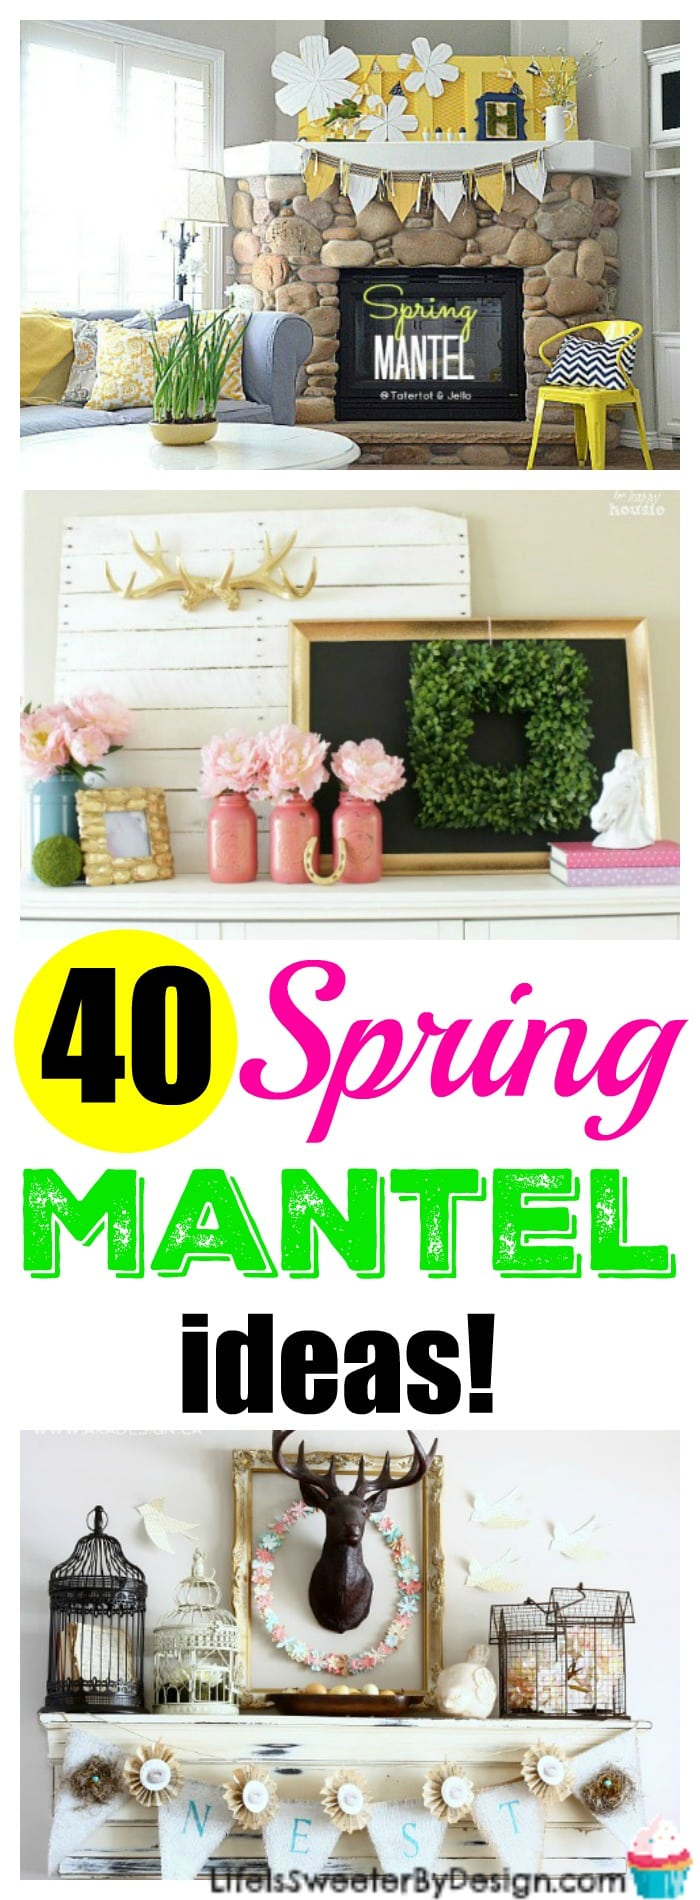 Spring mantel ideas are abounding with 40 amazing ideas.  Decorate your house for Spring with these great mantels. Spring banners, decor and more!